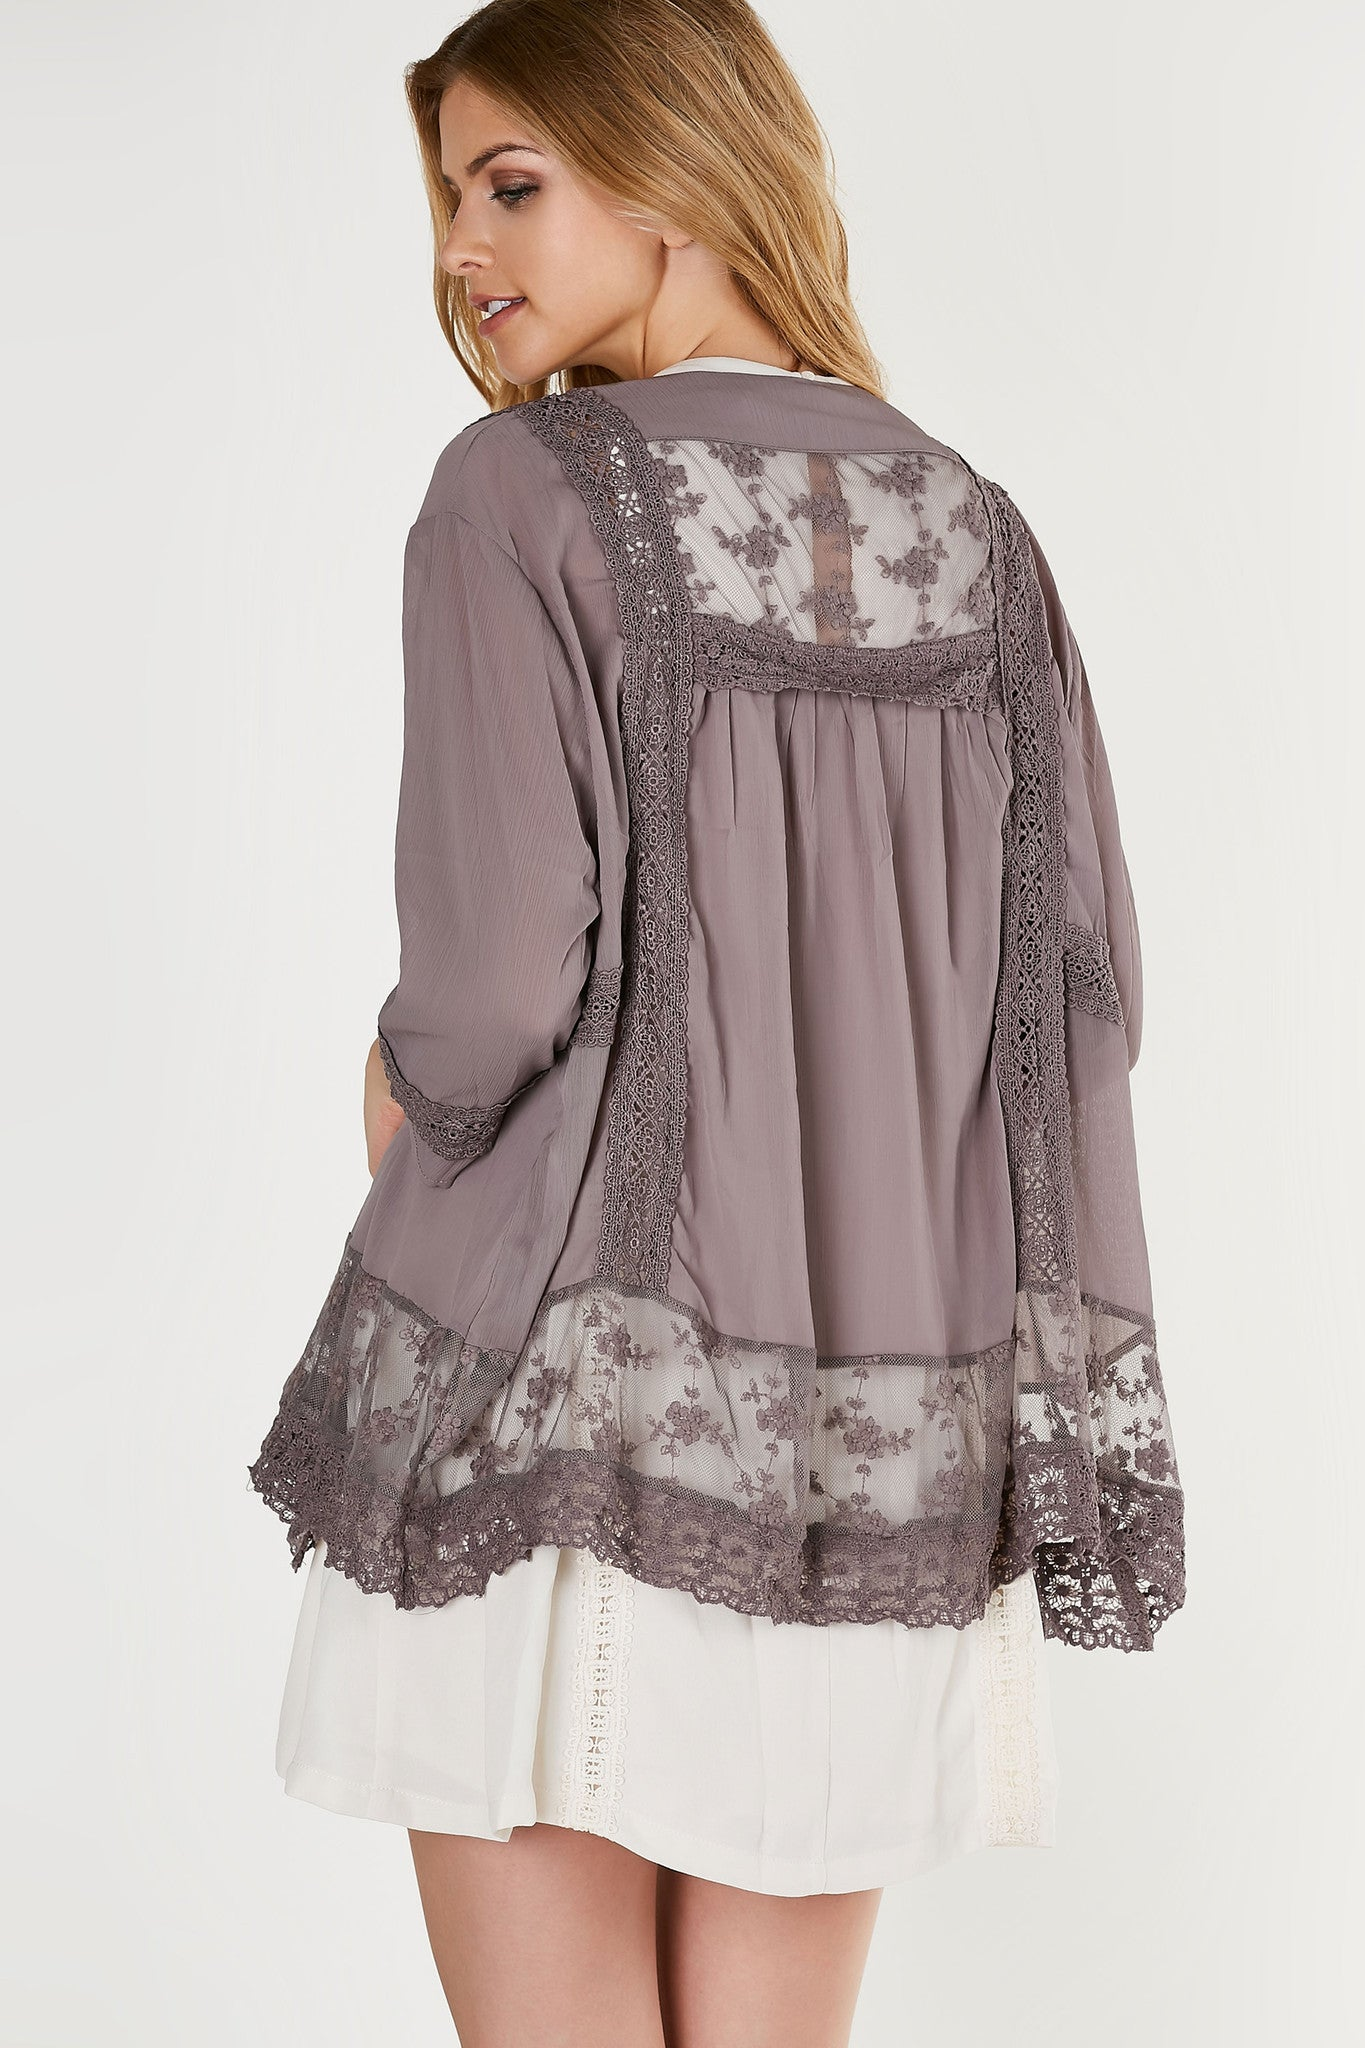 Flowy oversized kimono with intricate lace and crochet detailing.